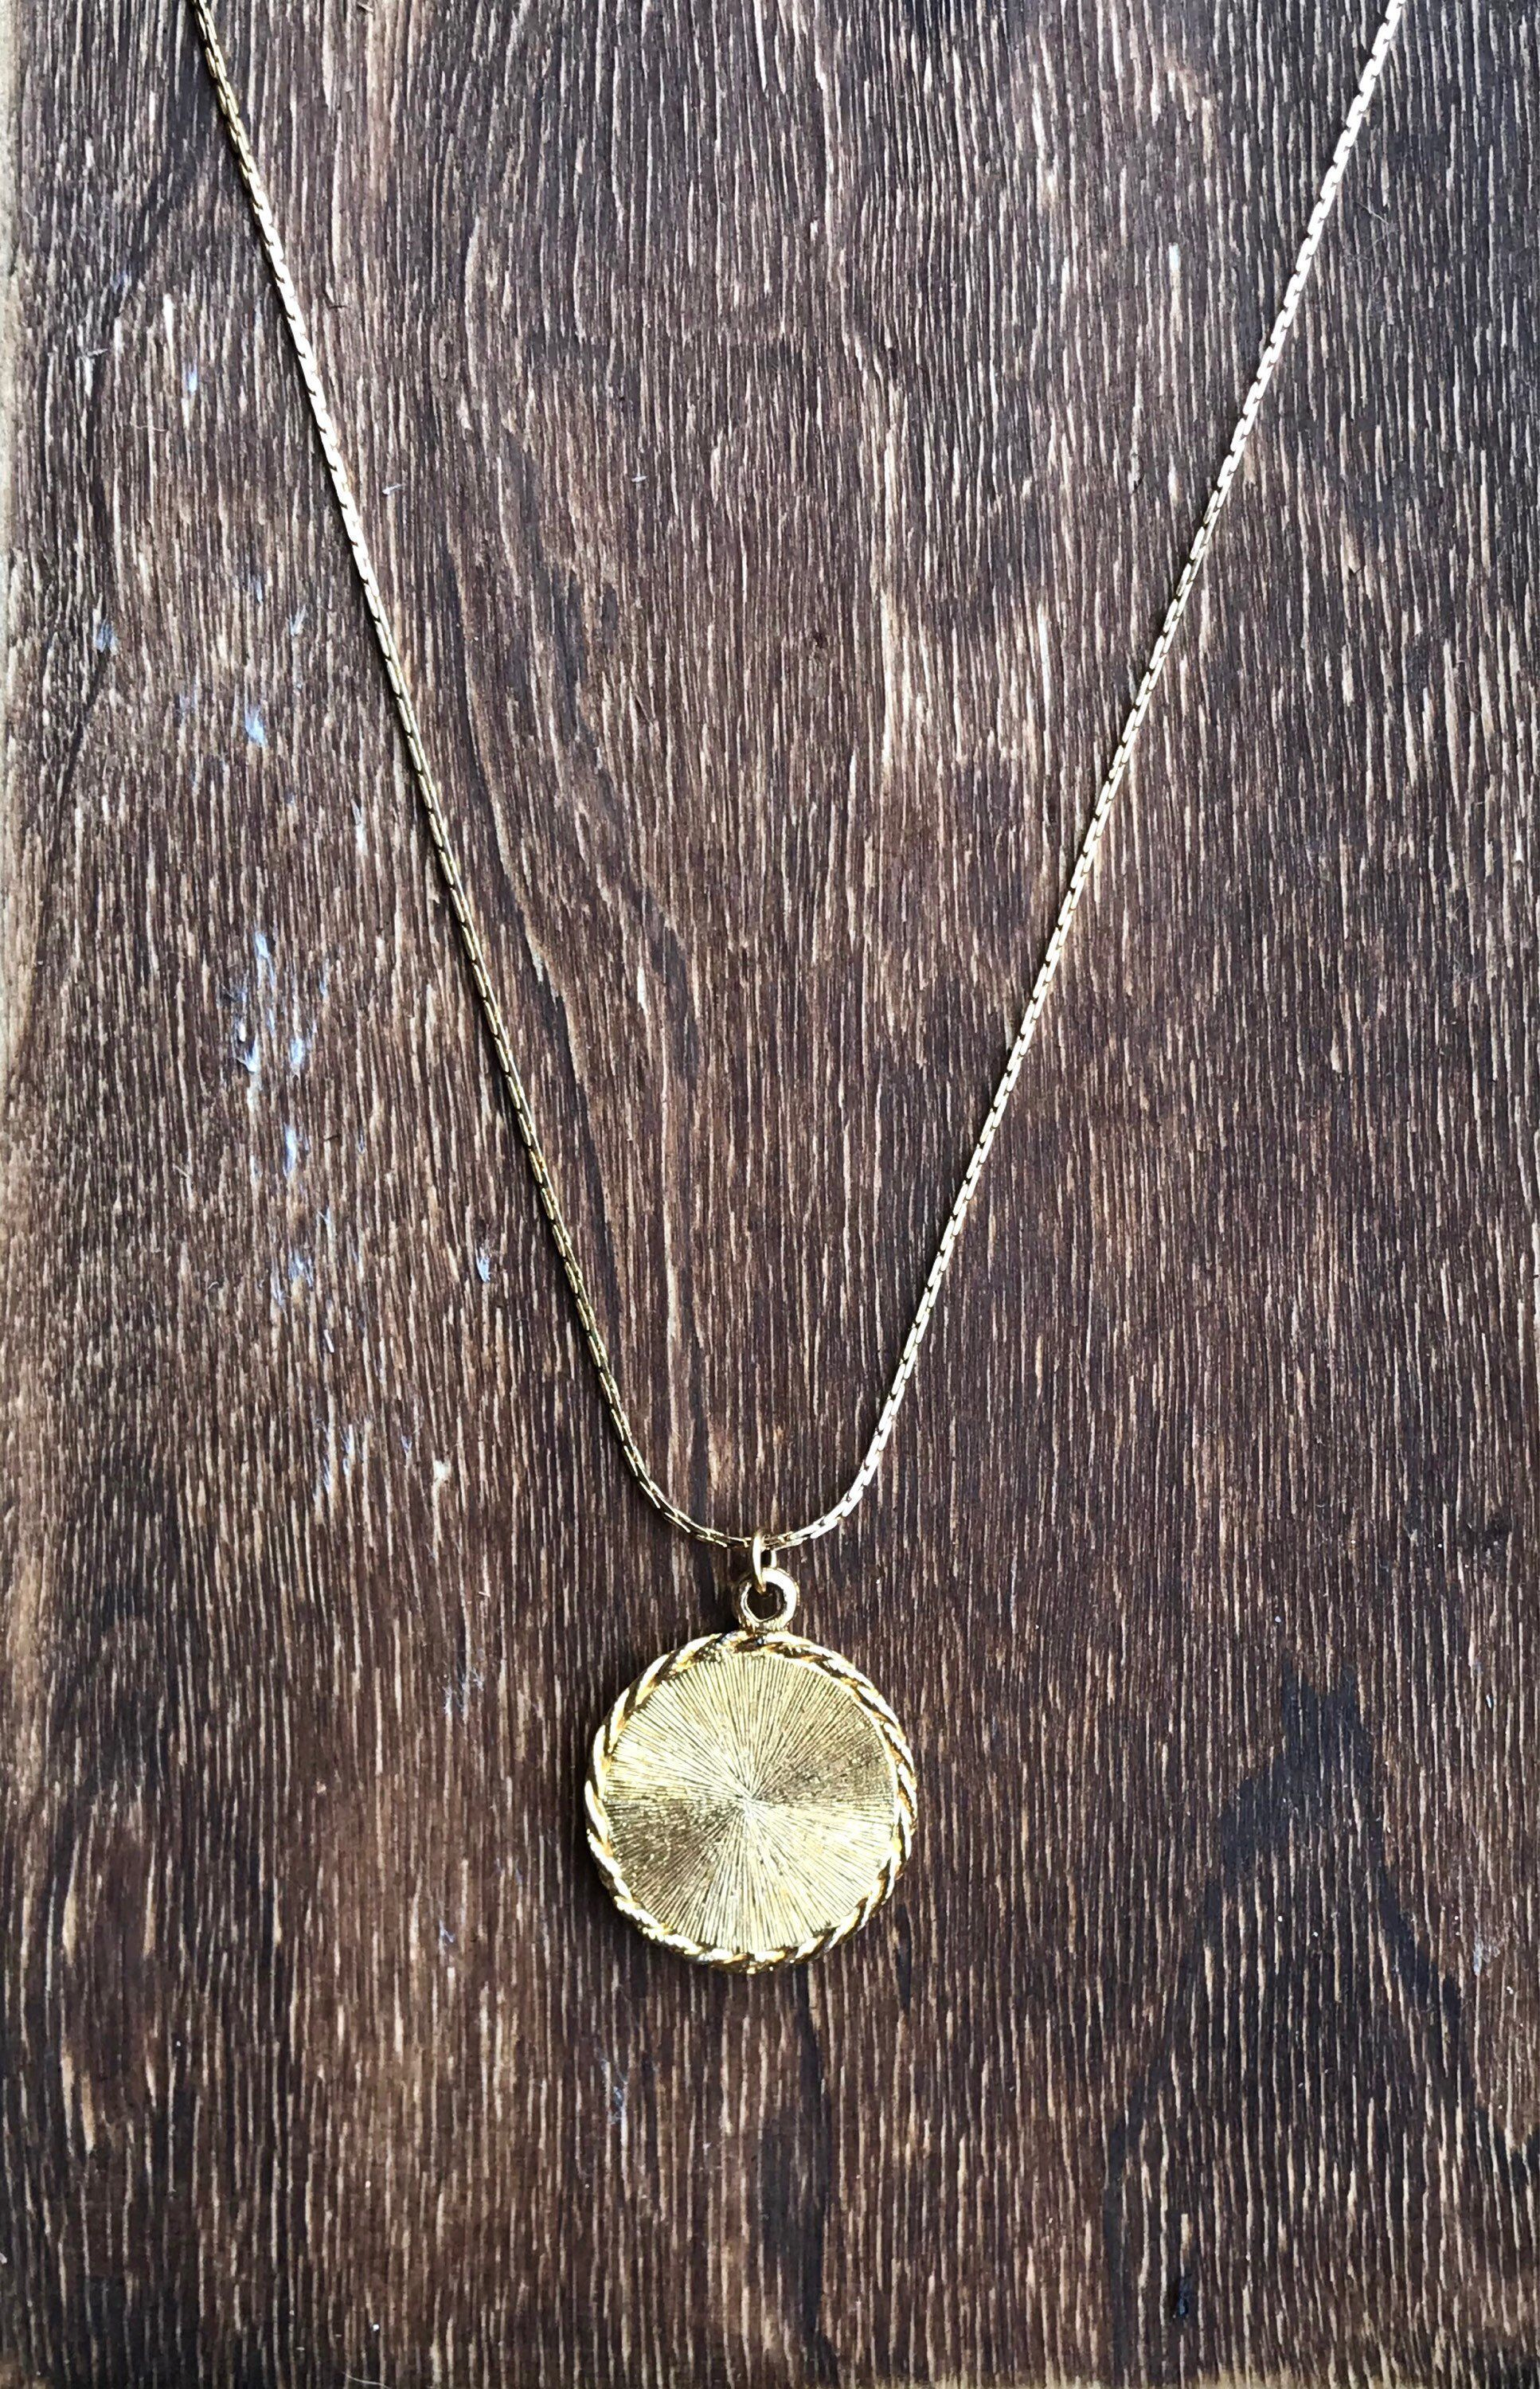 Vintage gold medallion necklace sylisting